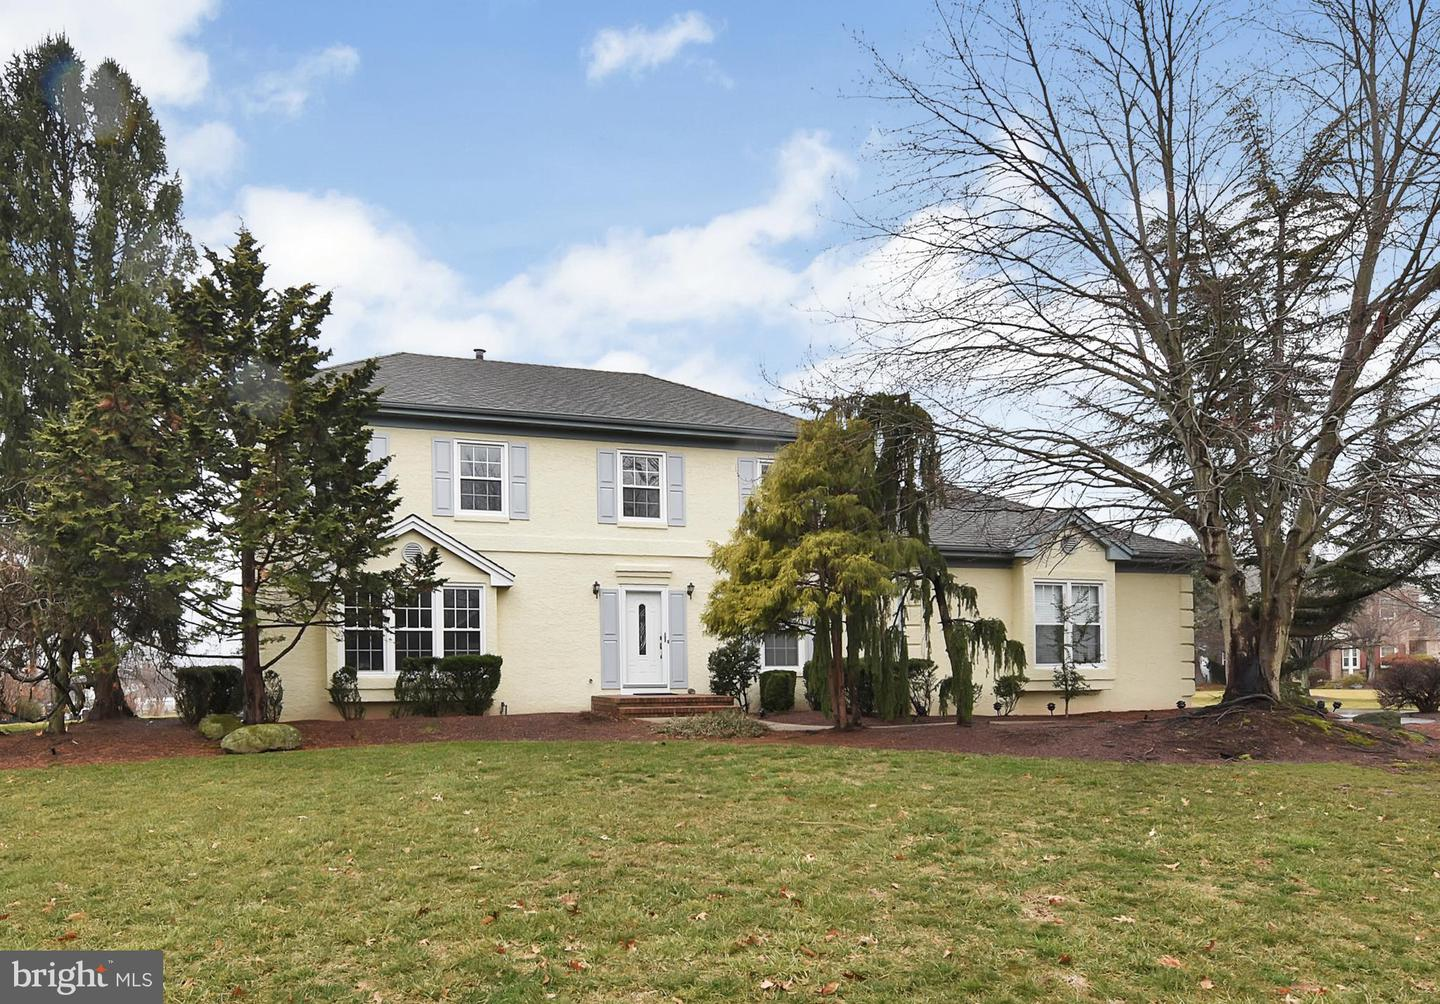 Property for Sale at 9 ROBERT Drive Princeton Junction, New Jersey 08550 United States